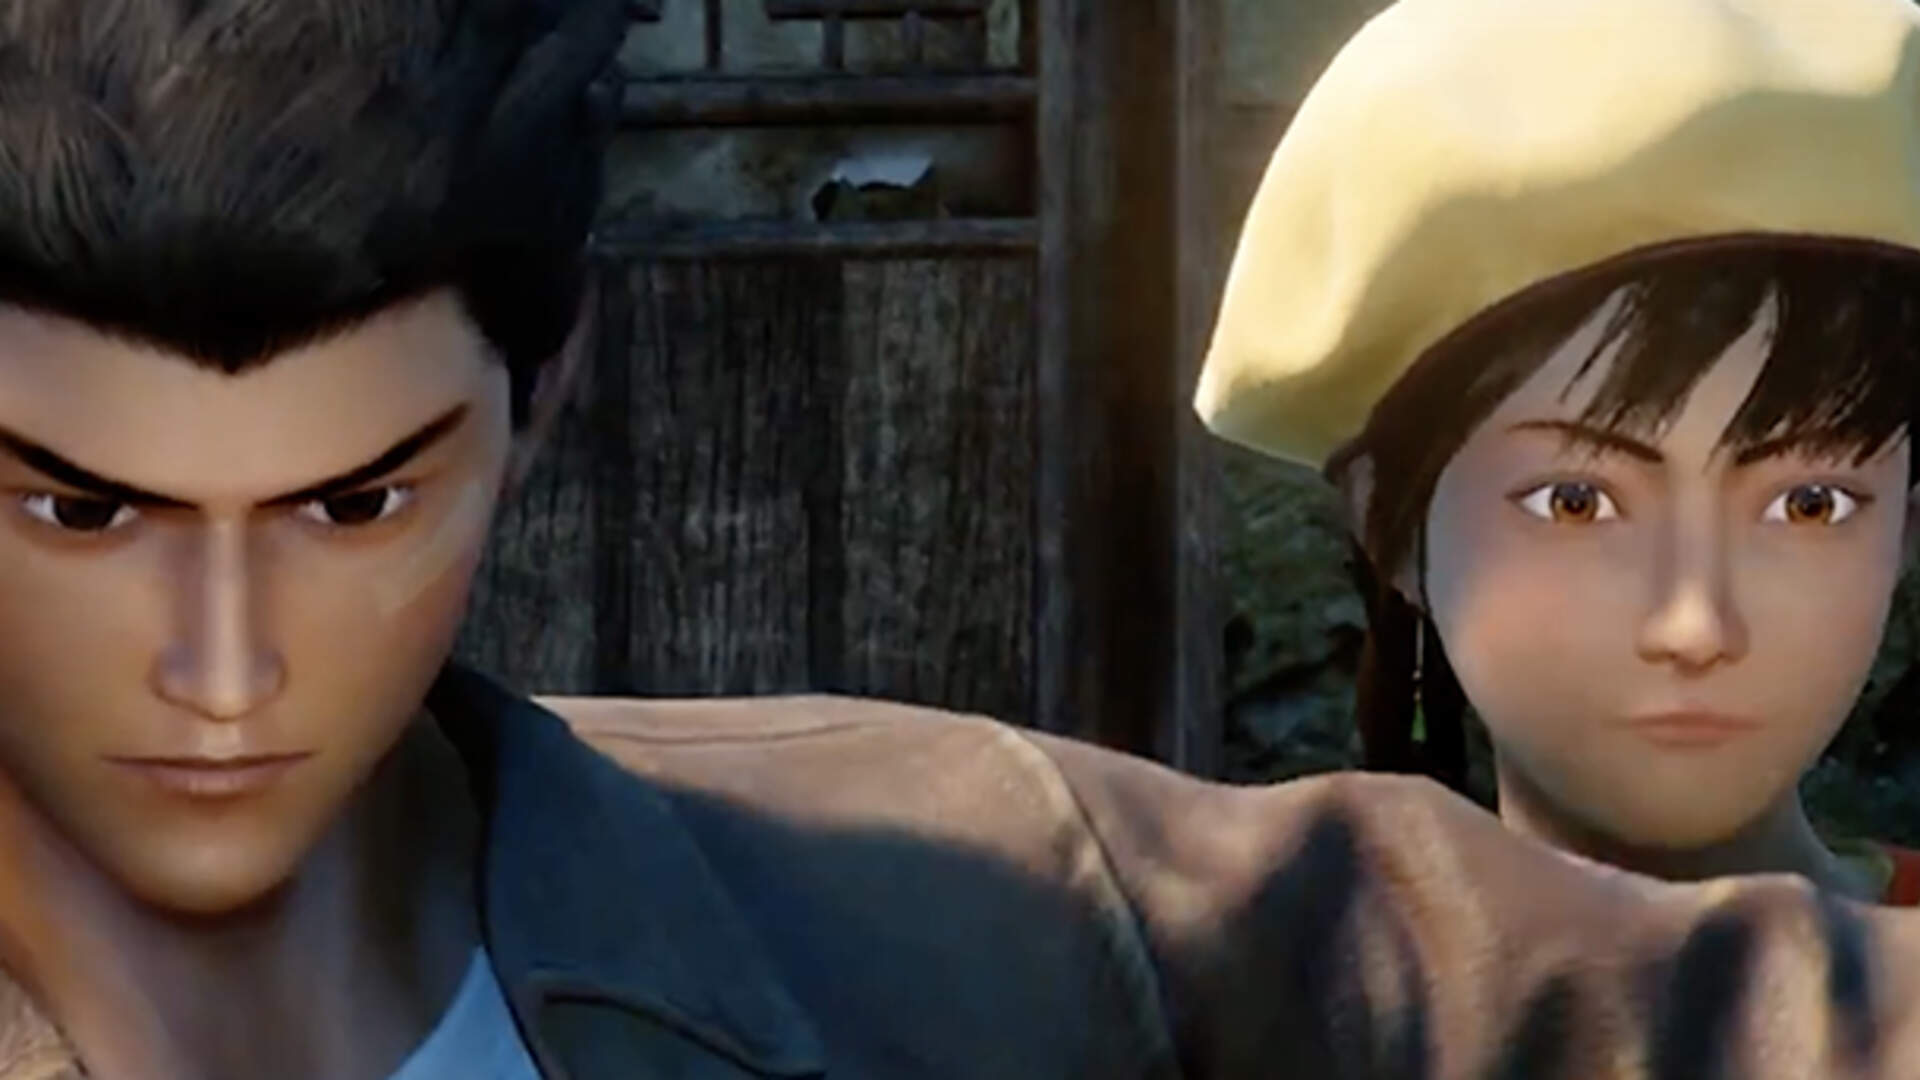 According to This New Teaser Trailer, Yes, Shenmue 3 Is Still Happening